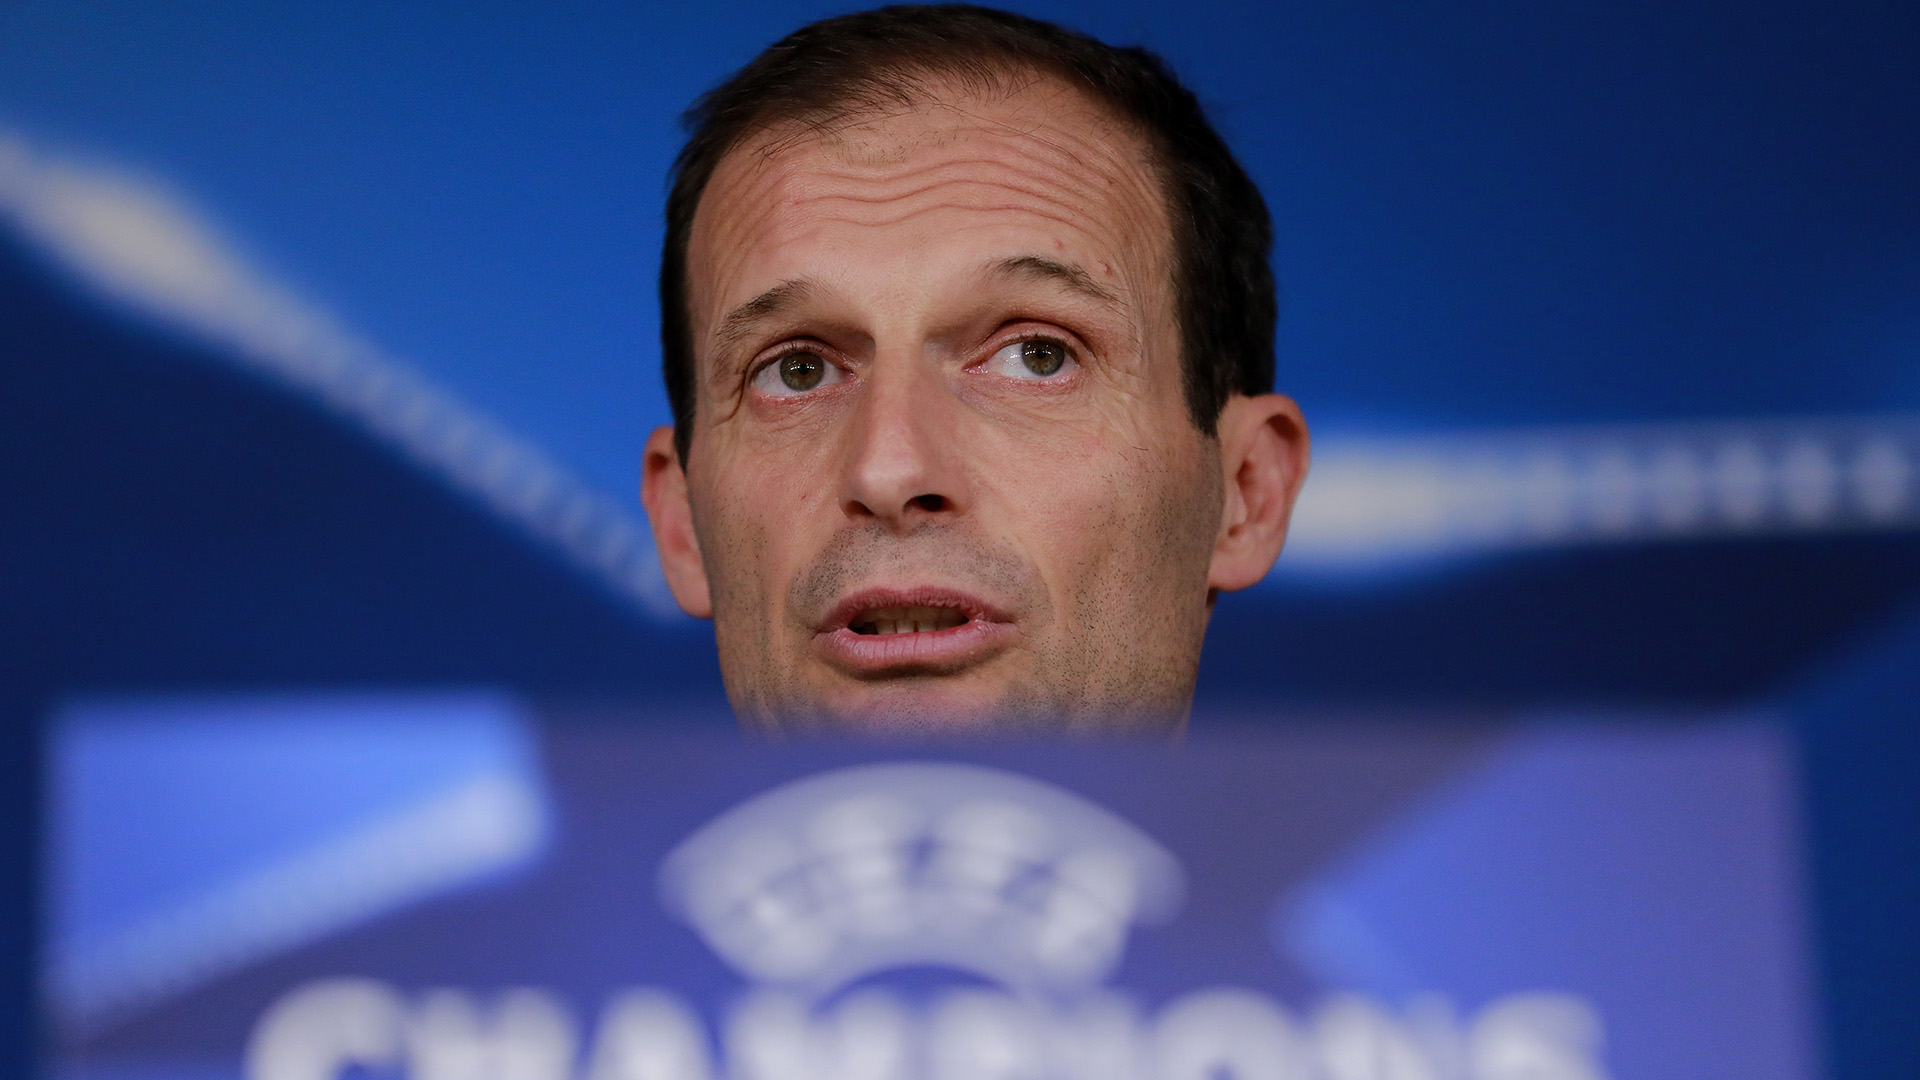 Real Madrid-Juventus, Allegri: